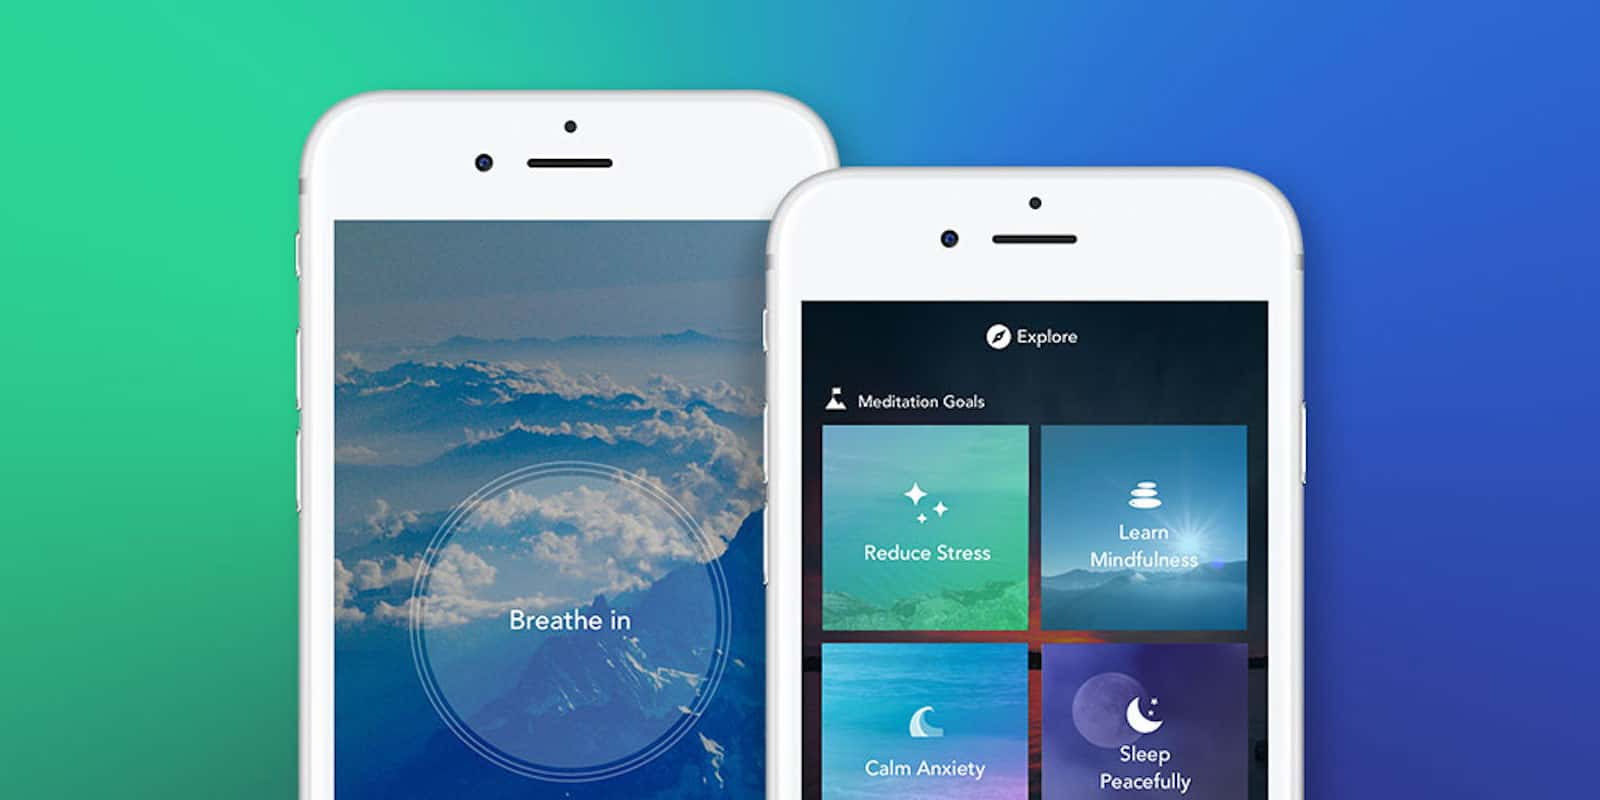 This app can help keep you in the moment, via short, guided meditation sessions.